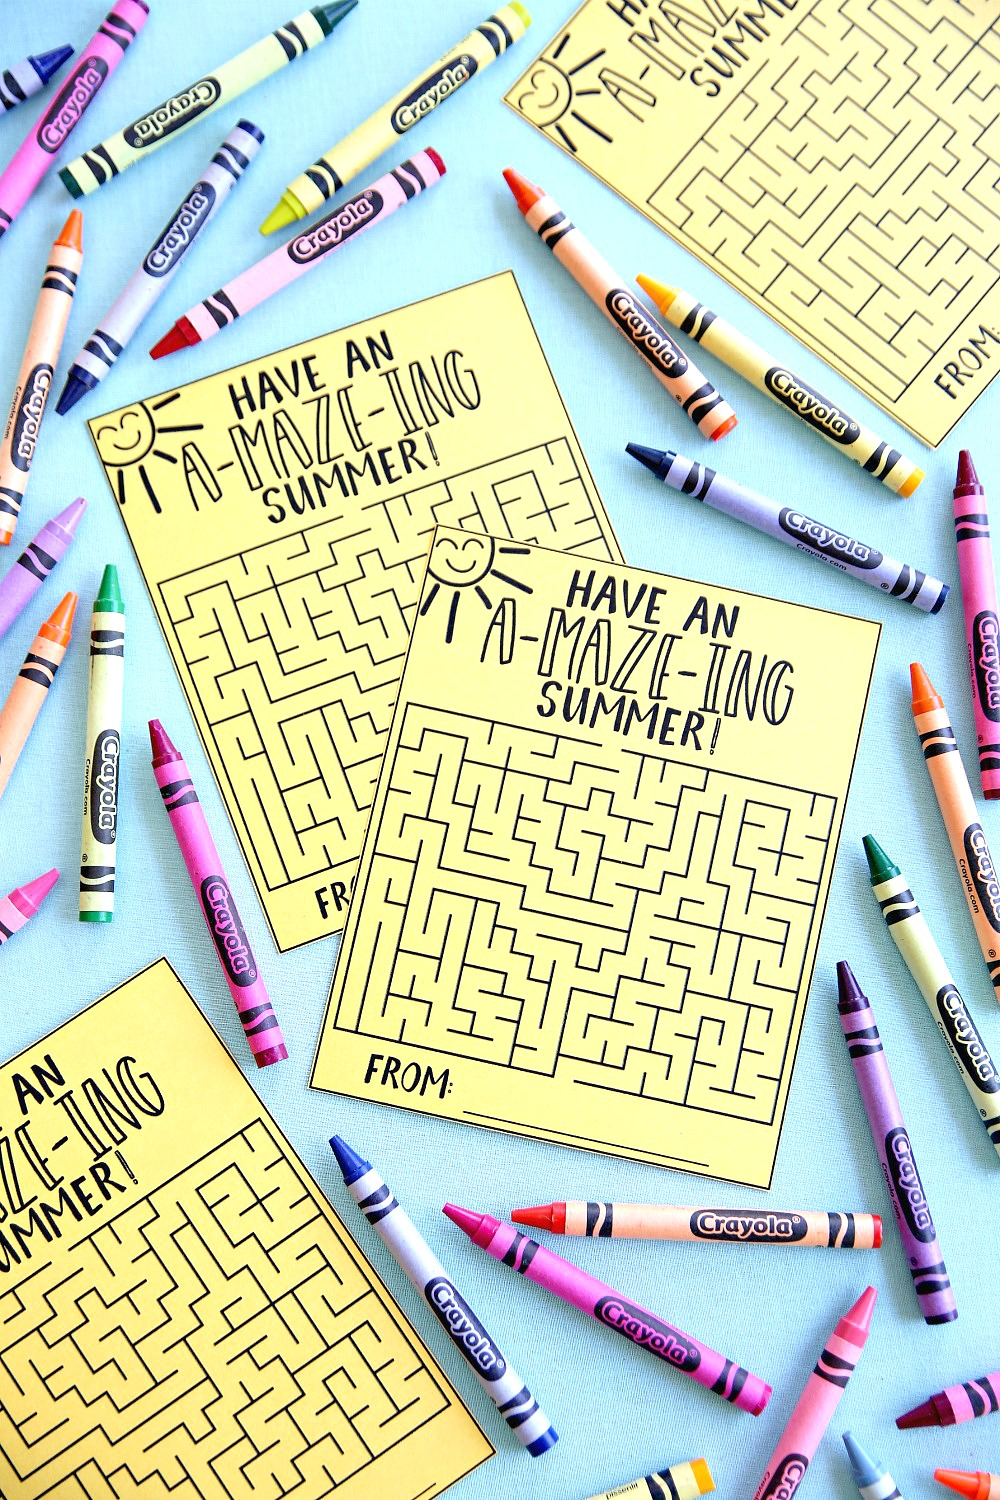 image about Summer Printable titled Comprise an Remarkable Summer season Maze Playing cards Cost-free Printable - Pleased-Shift